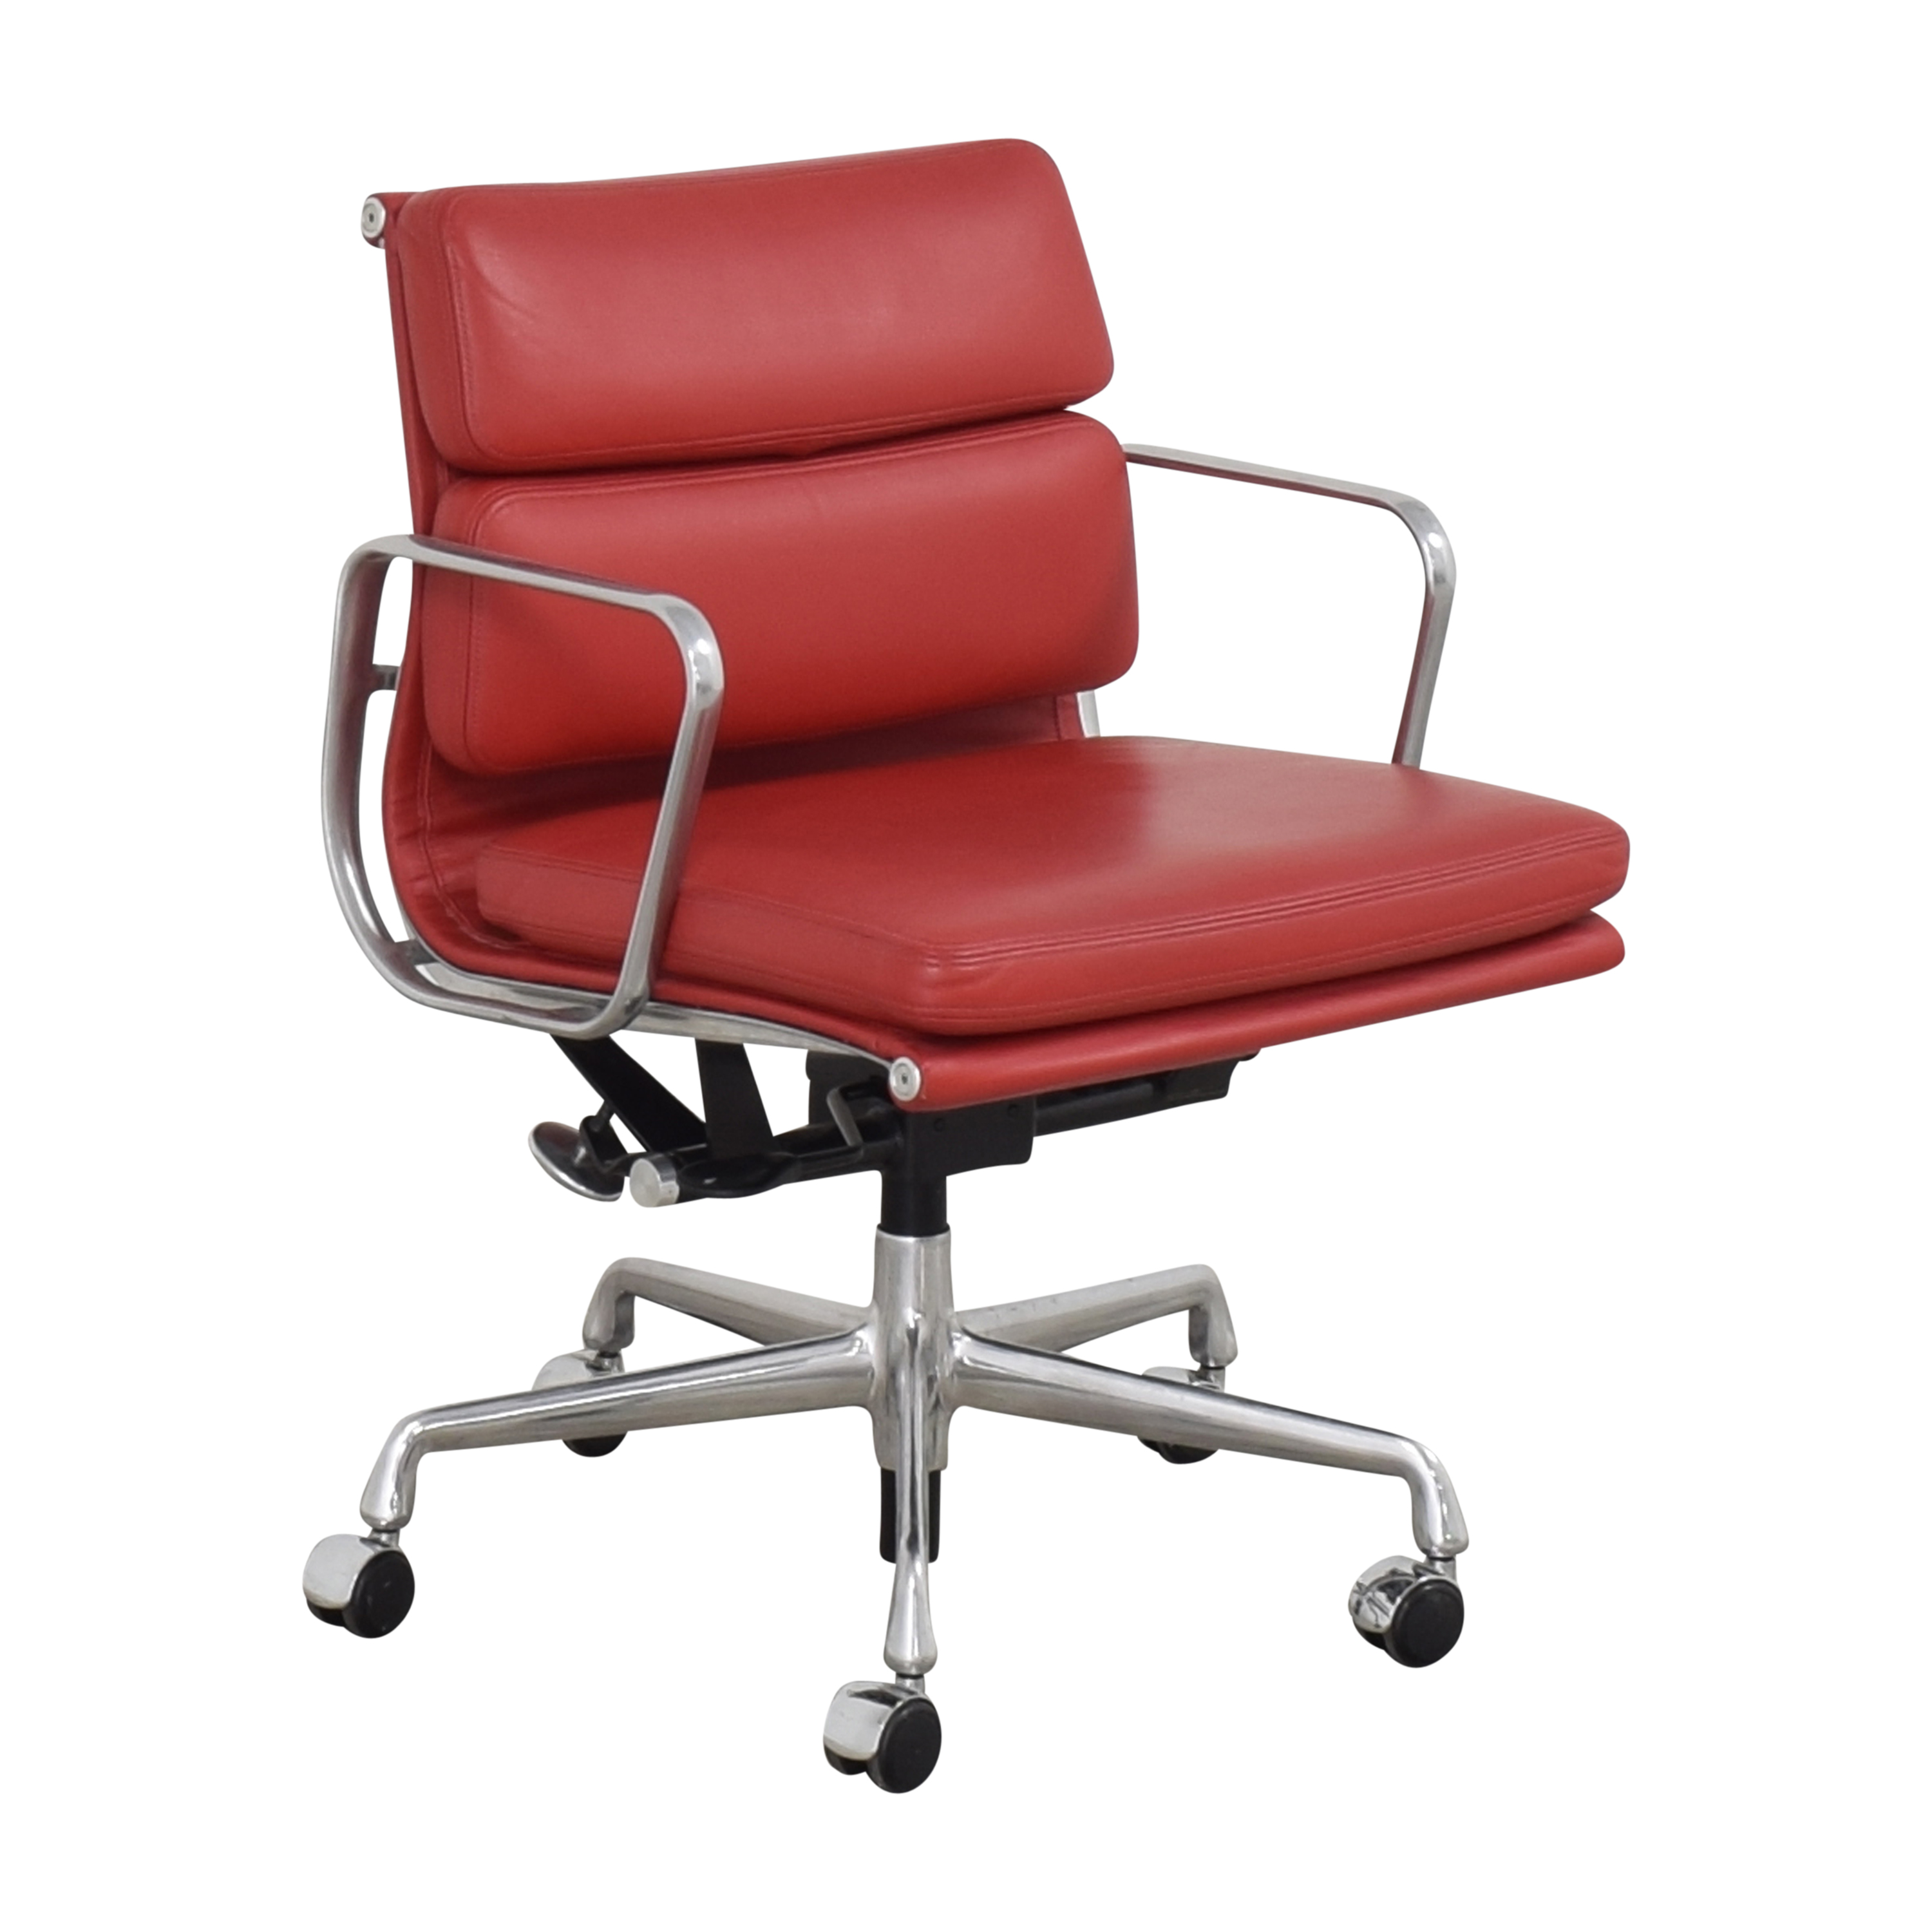 Herman Miller Herman Miller Eames Soft Pad Management Chair red and silver